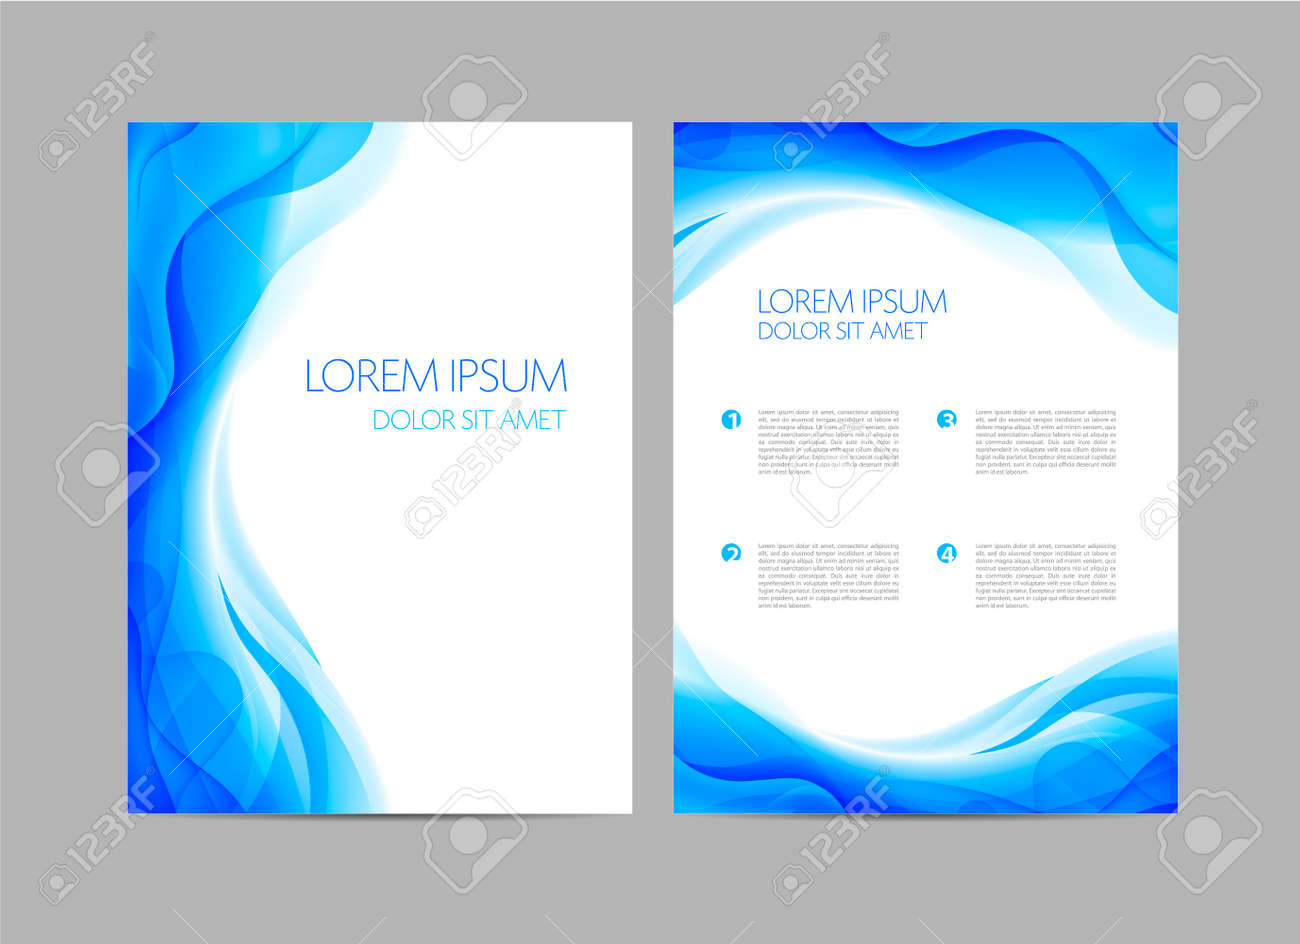 Vector set of abstract blue annual report templates, water covers, wavy background, flyers, brochures. Flow - 169538423